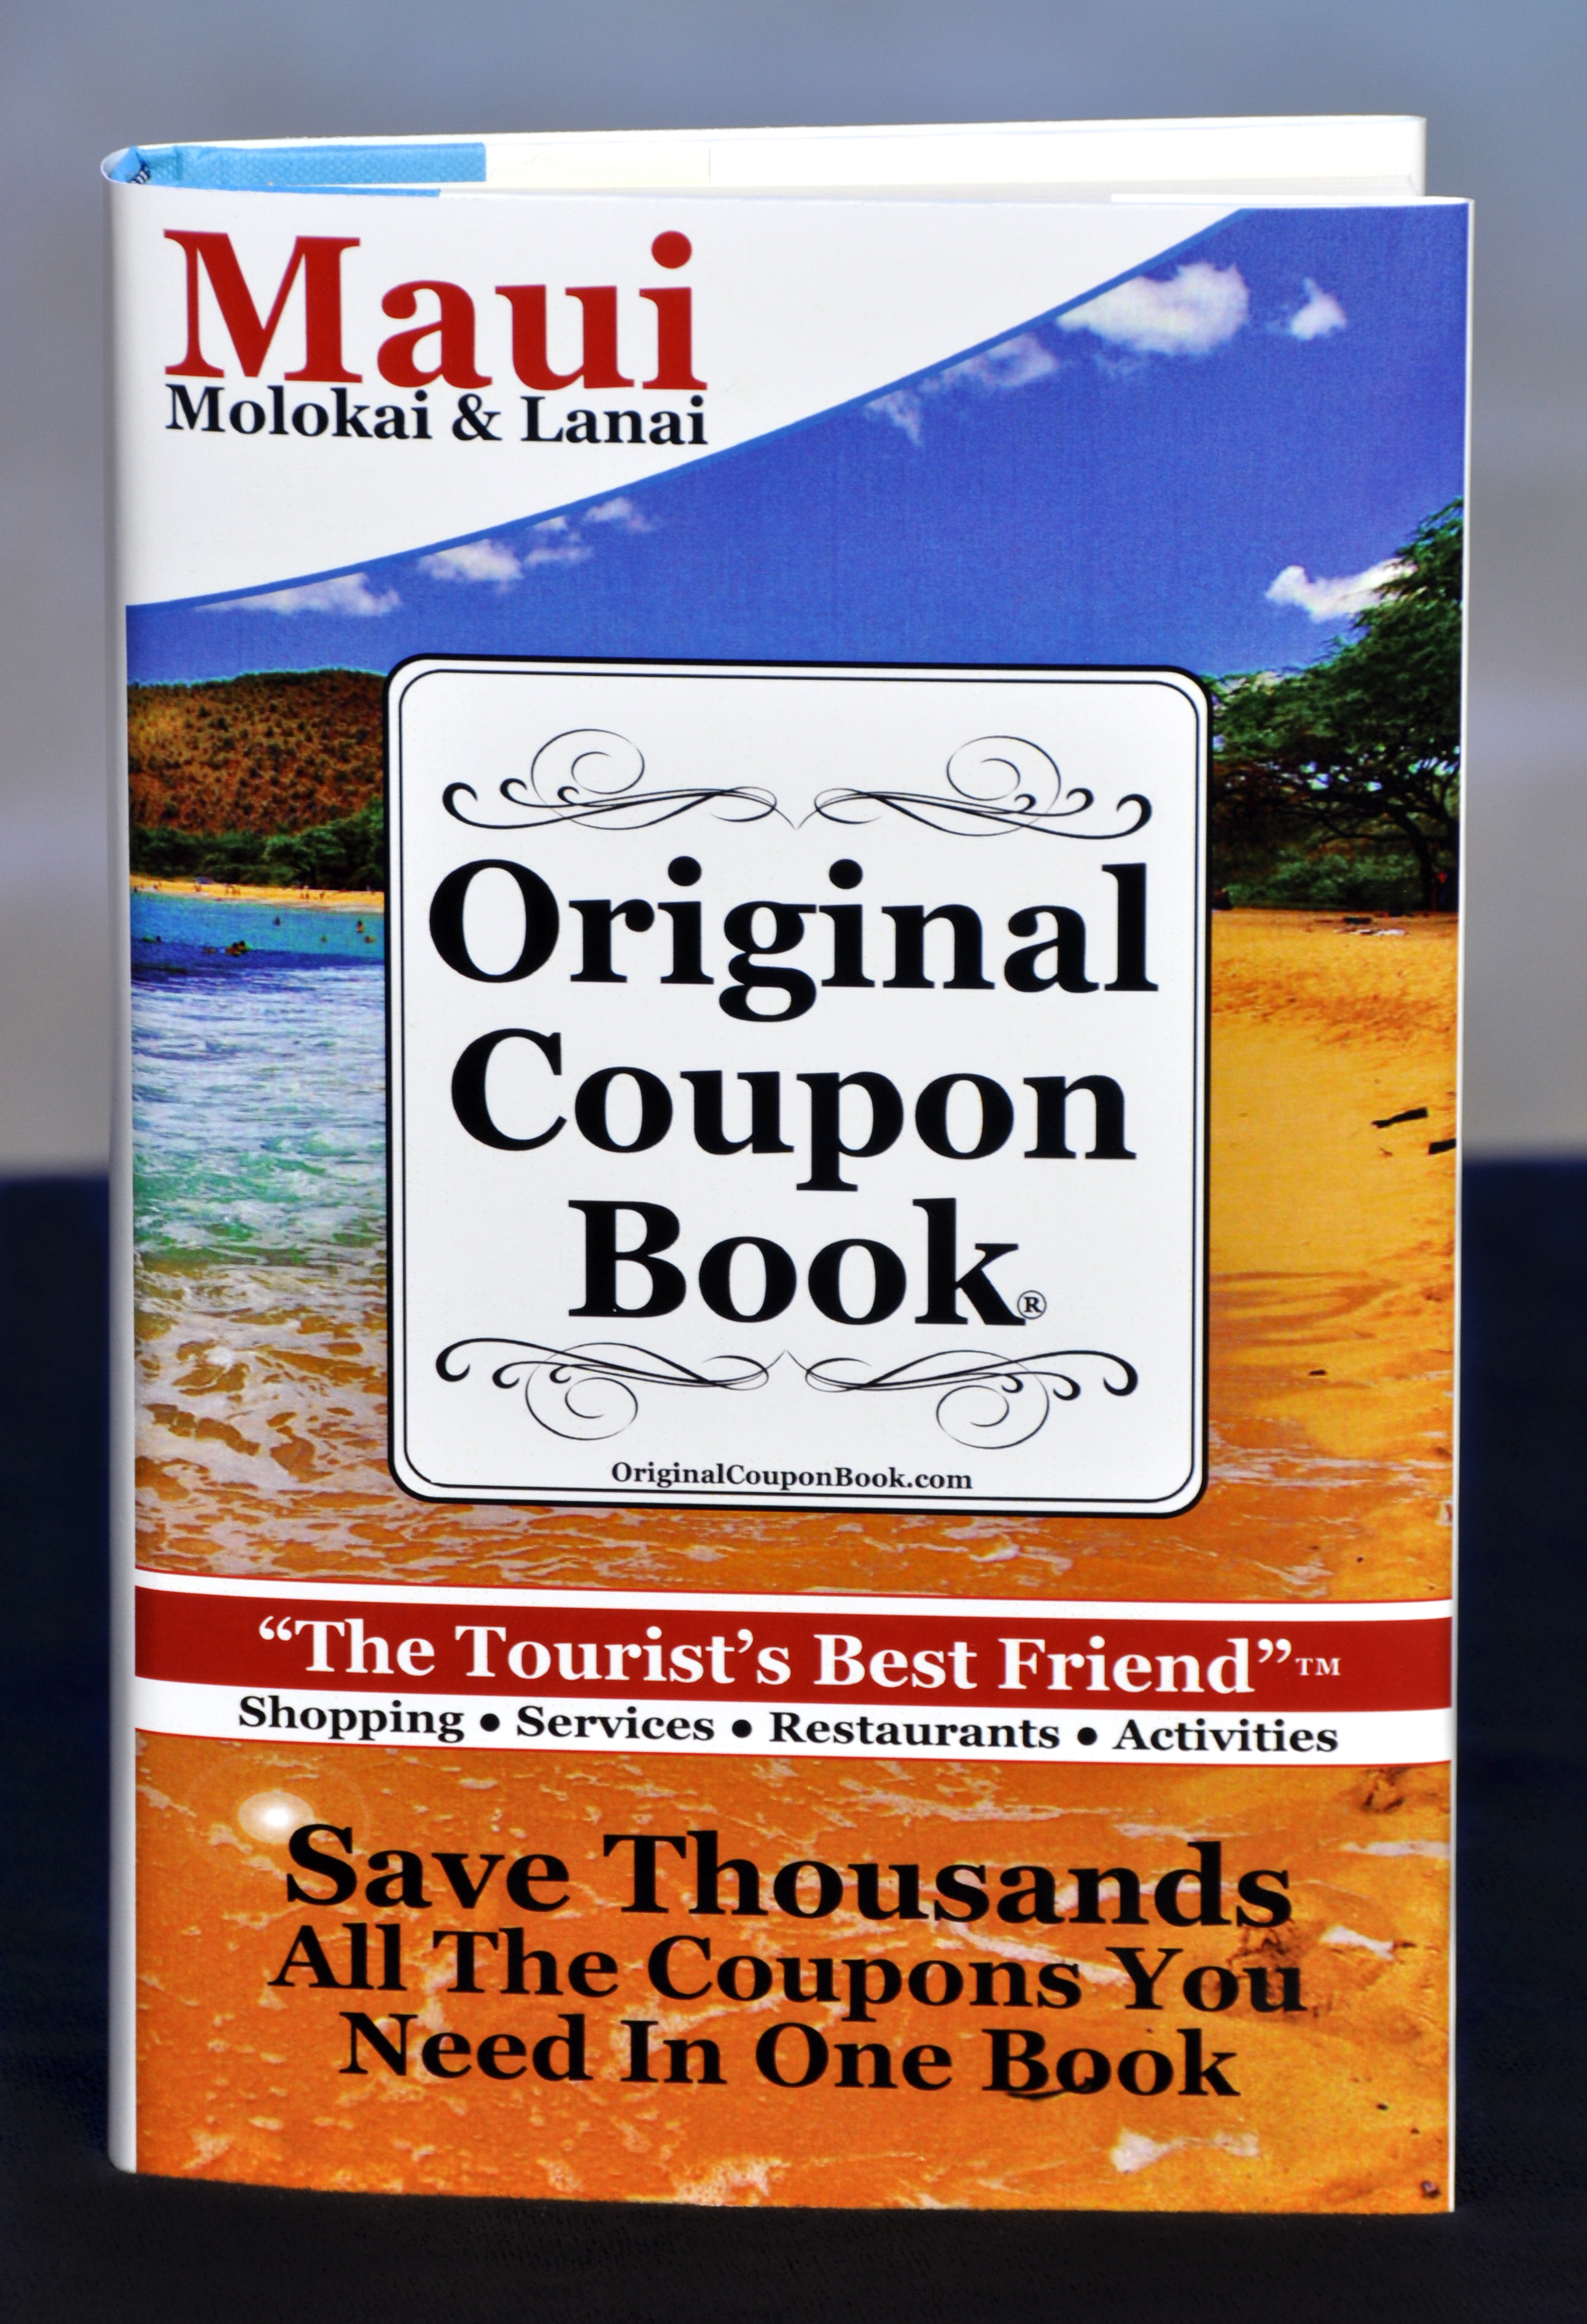 Maui restaurant discount coupons